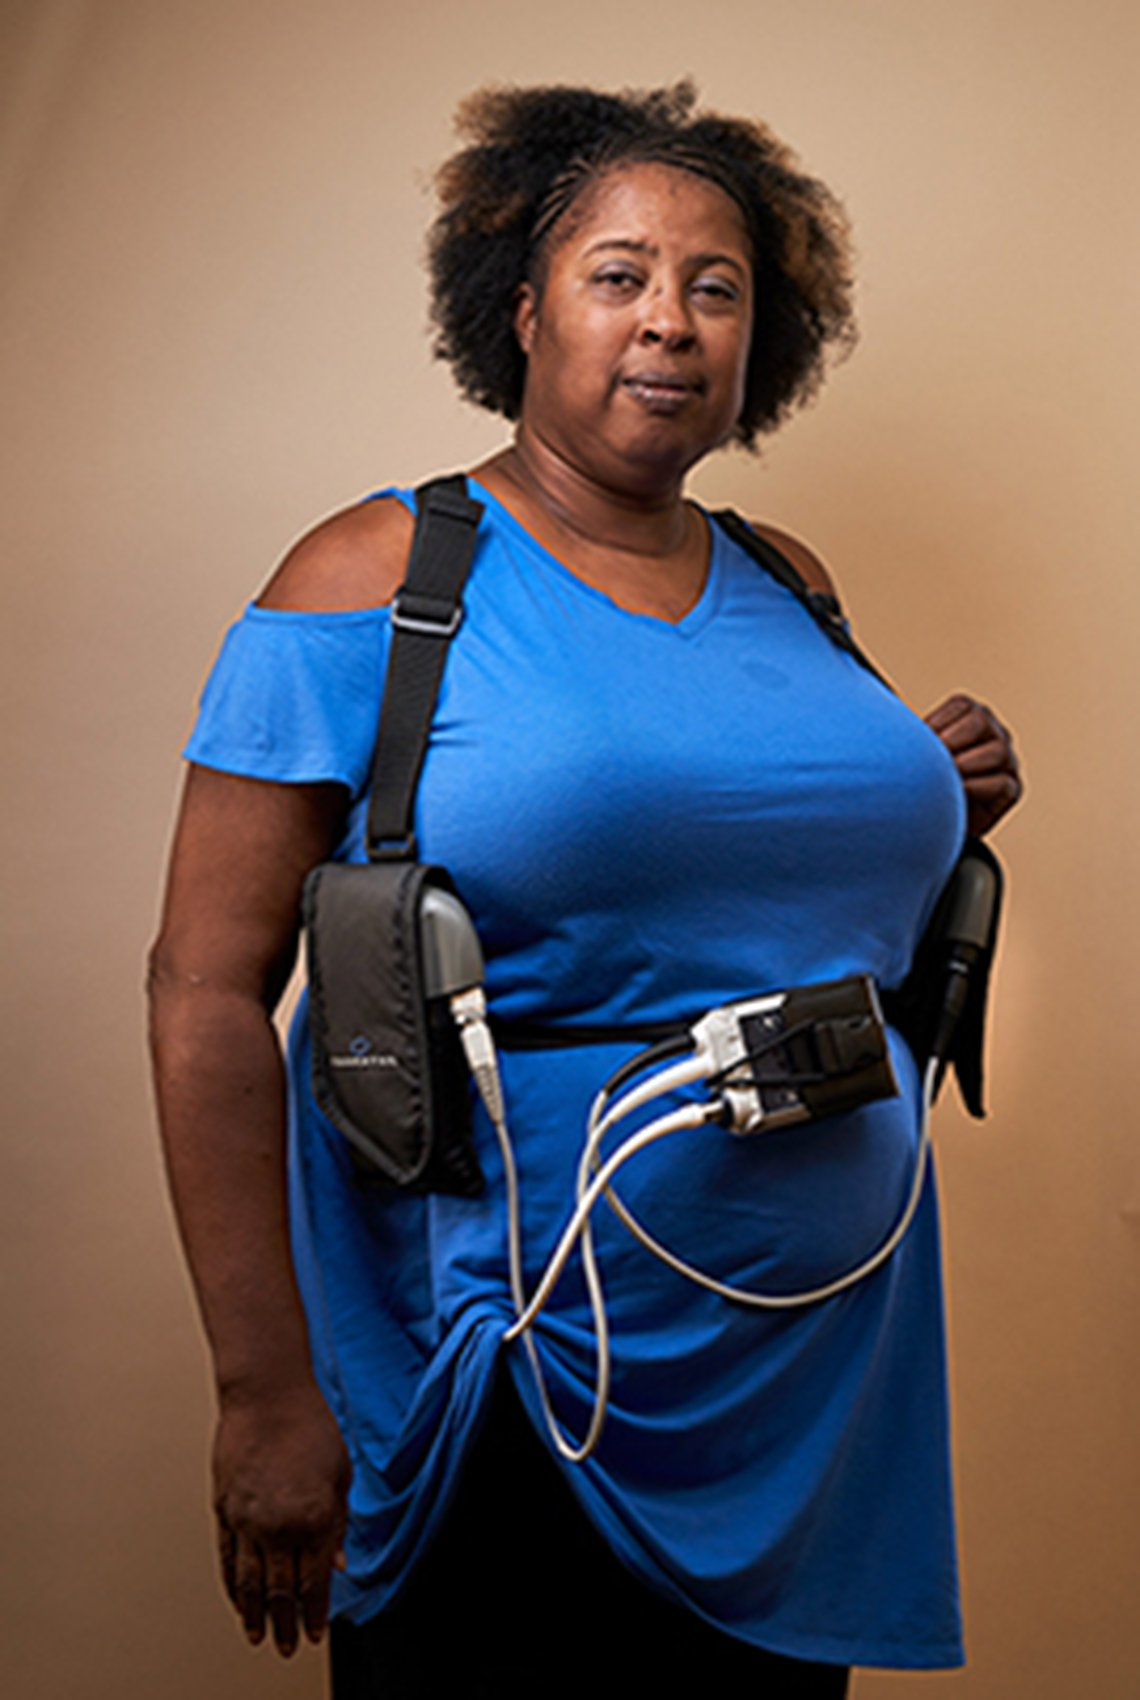 Brenda Smith with her heart pump